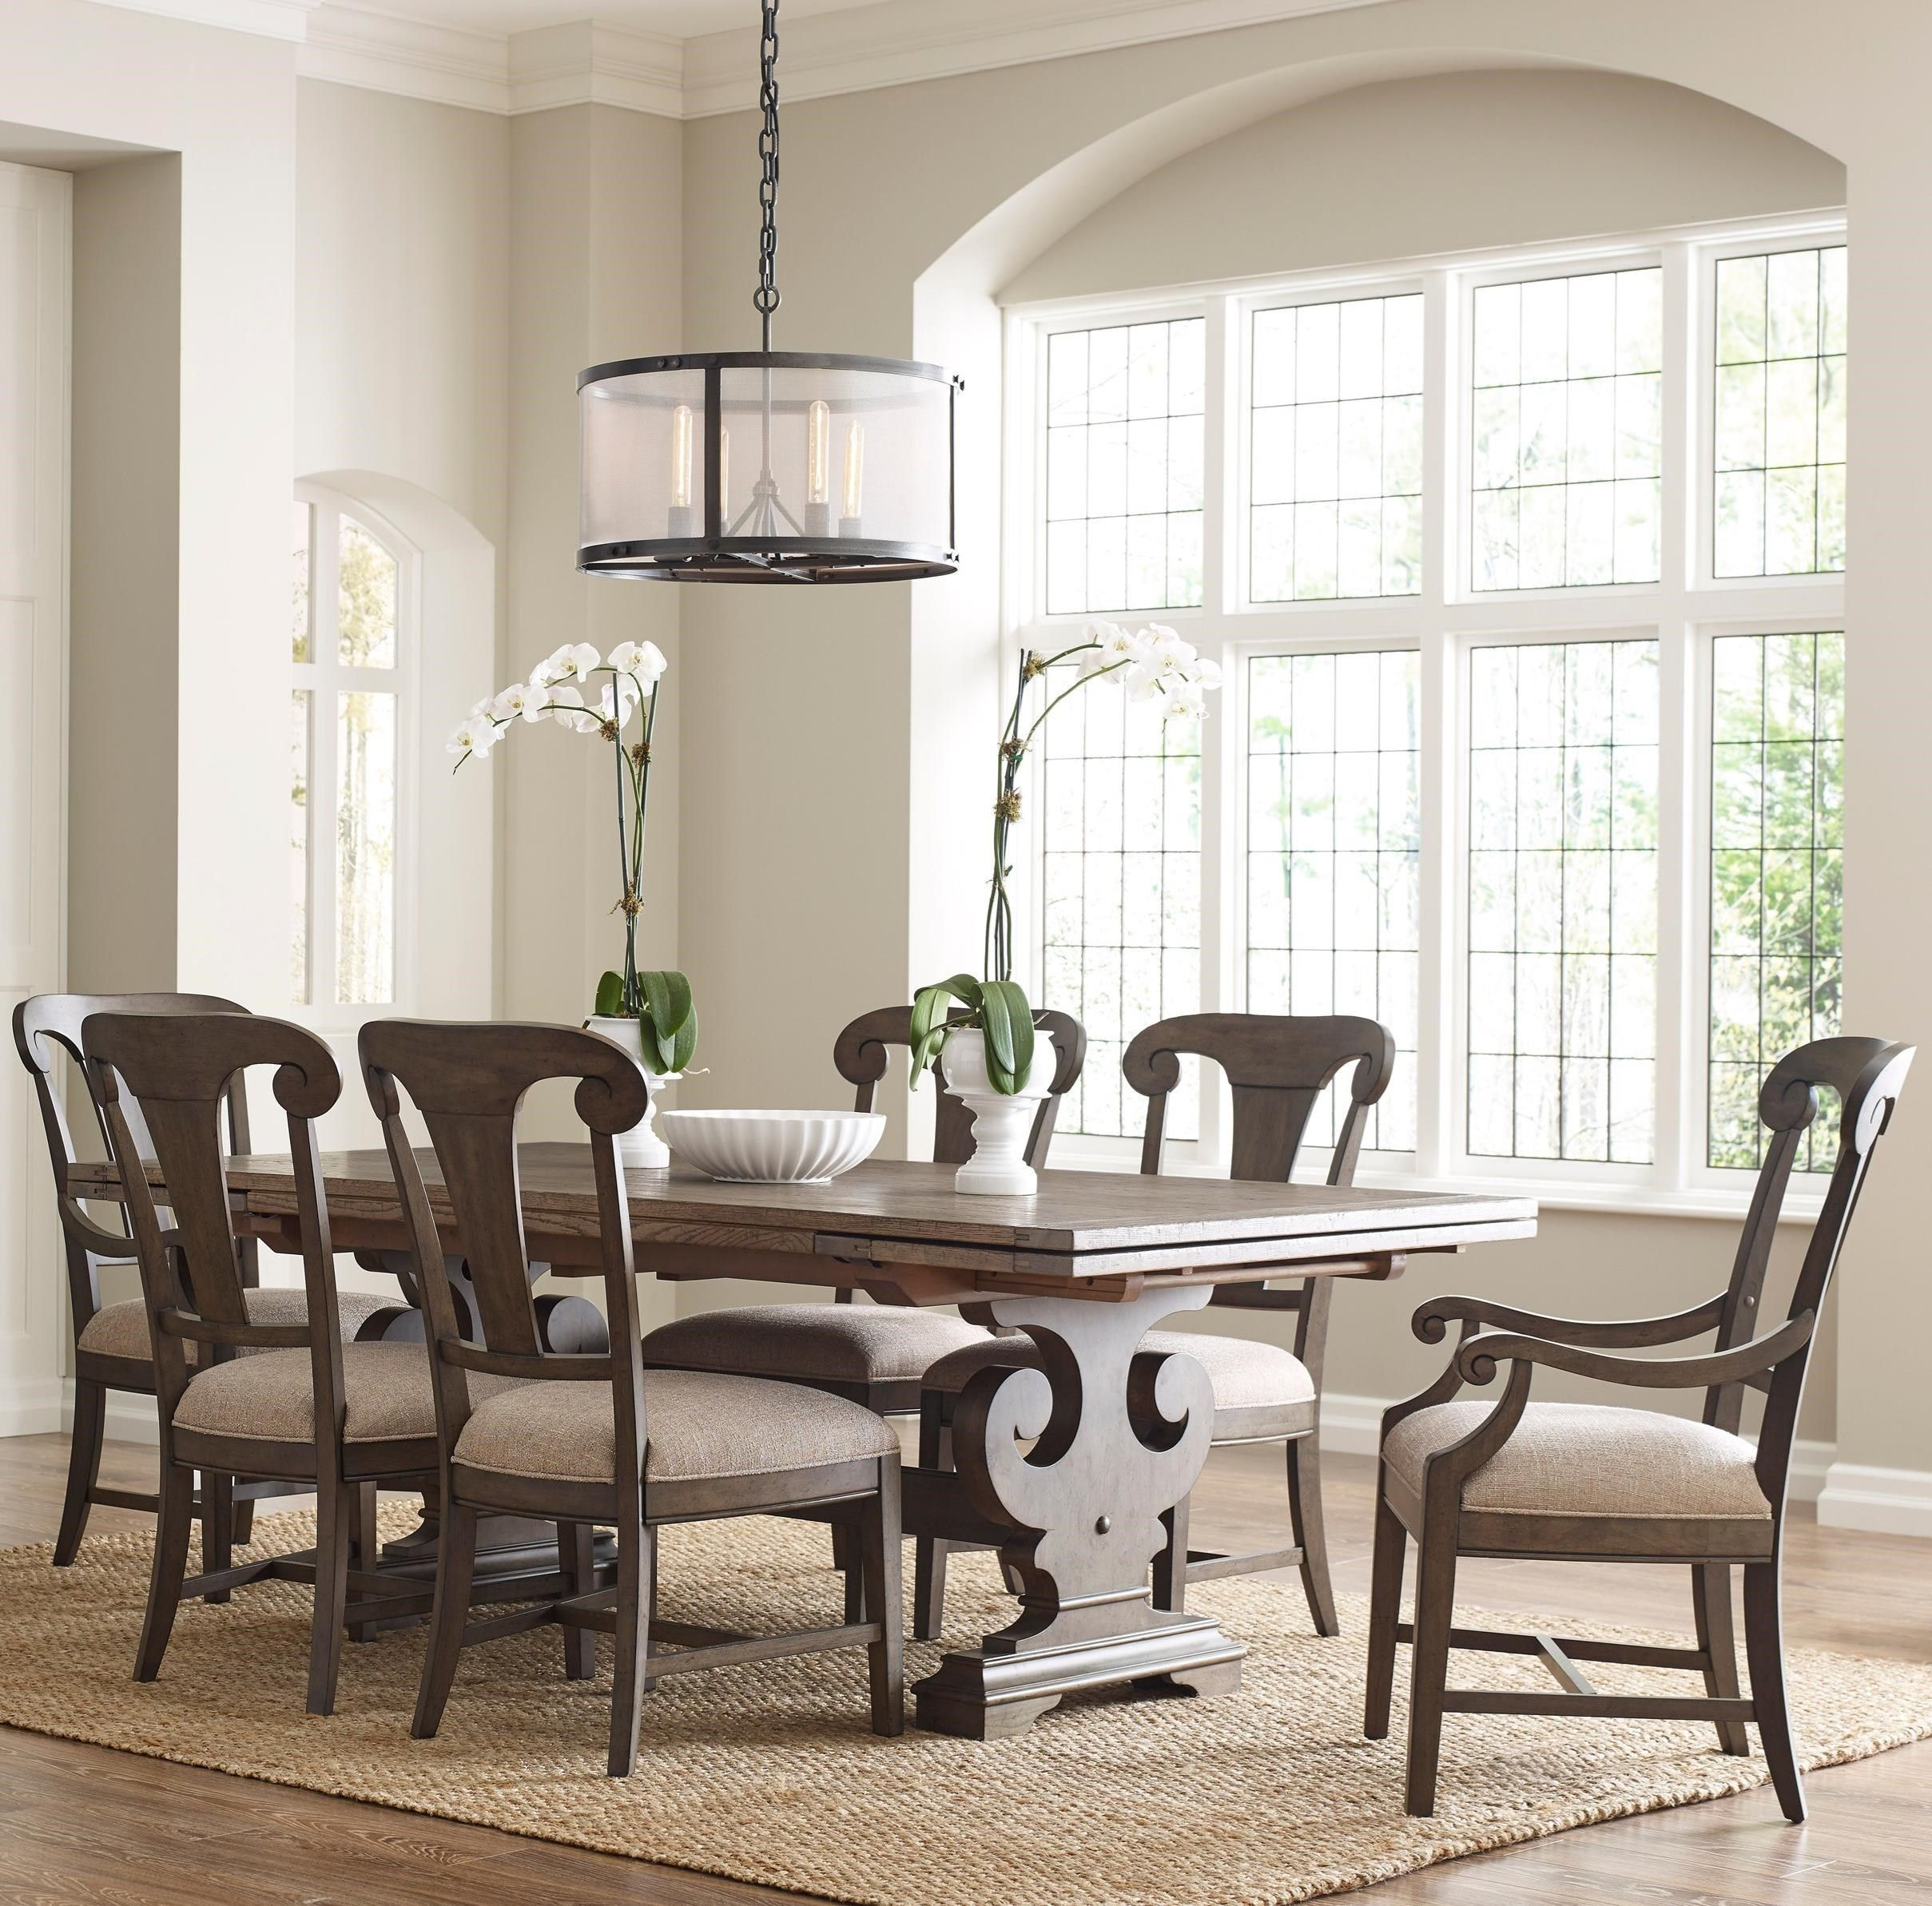 Greyson 7 Pc Dining Set By Kincaid Furniture Kincaid Furniture Furniture Dining Room Sets